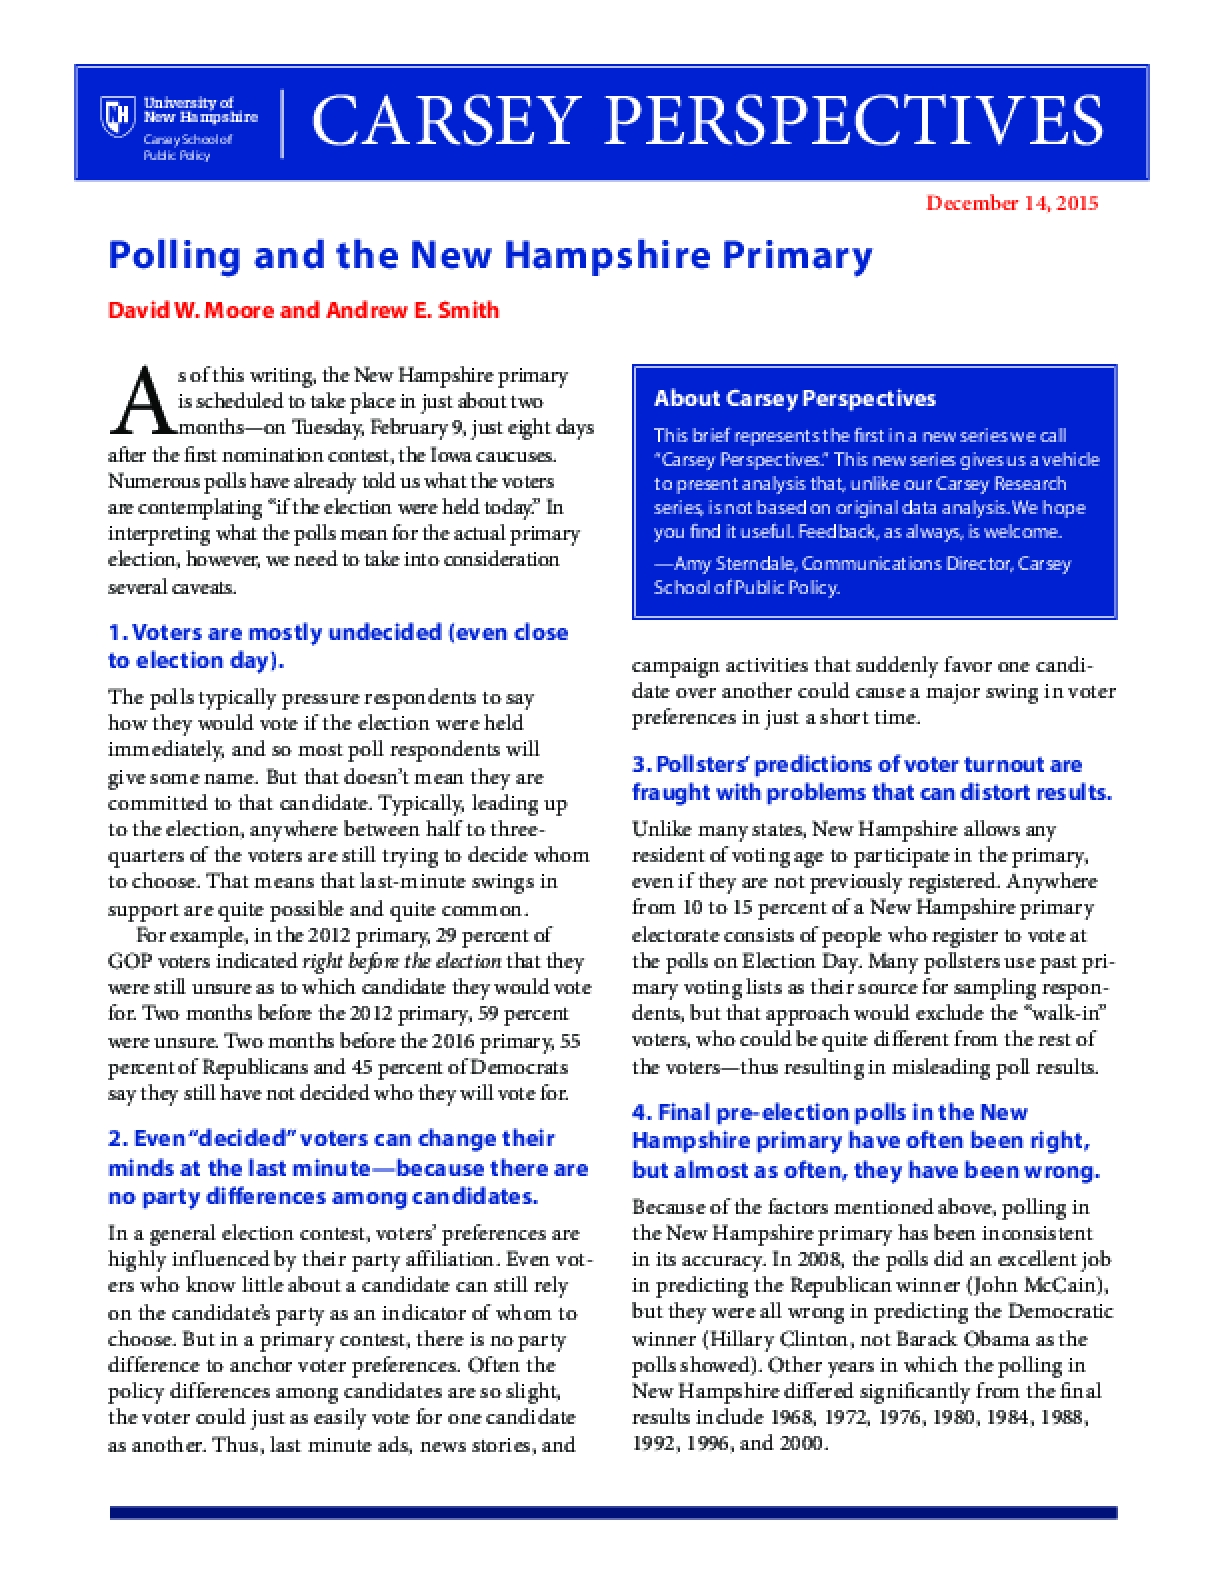 Carsey Perspectives: Polling and the New Hampshire Primary